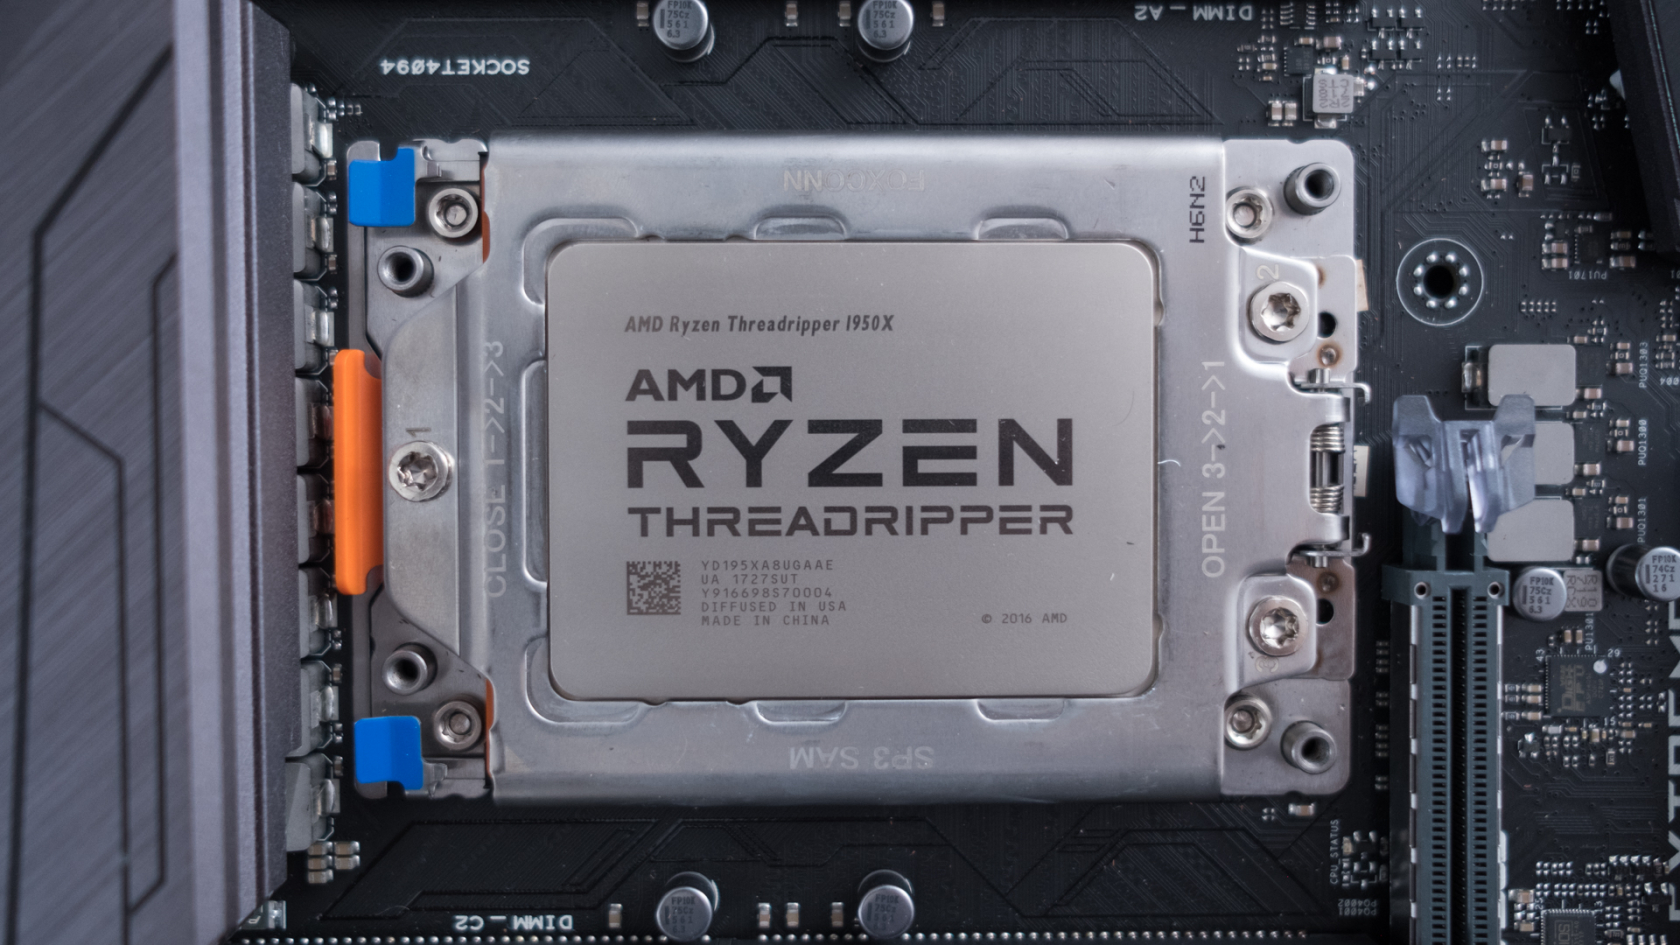 Second generation Threadripper CPUs spotted along with more Ryzen models